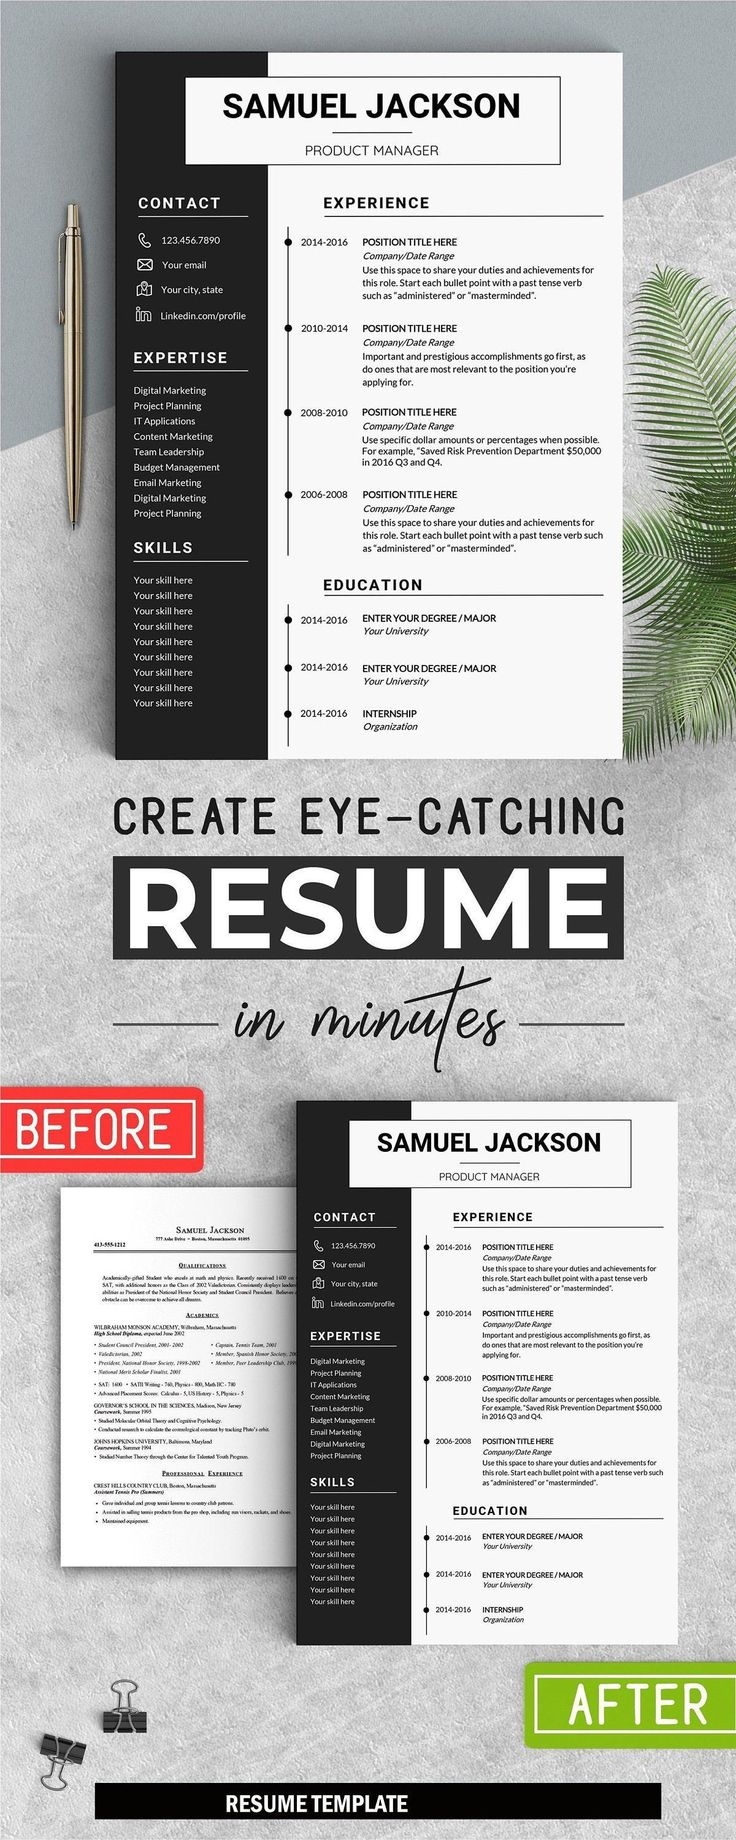 Professional Resume, Instant Download CV, WORD, Cover